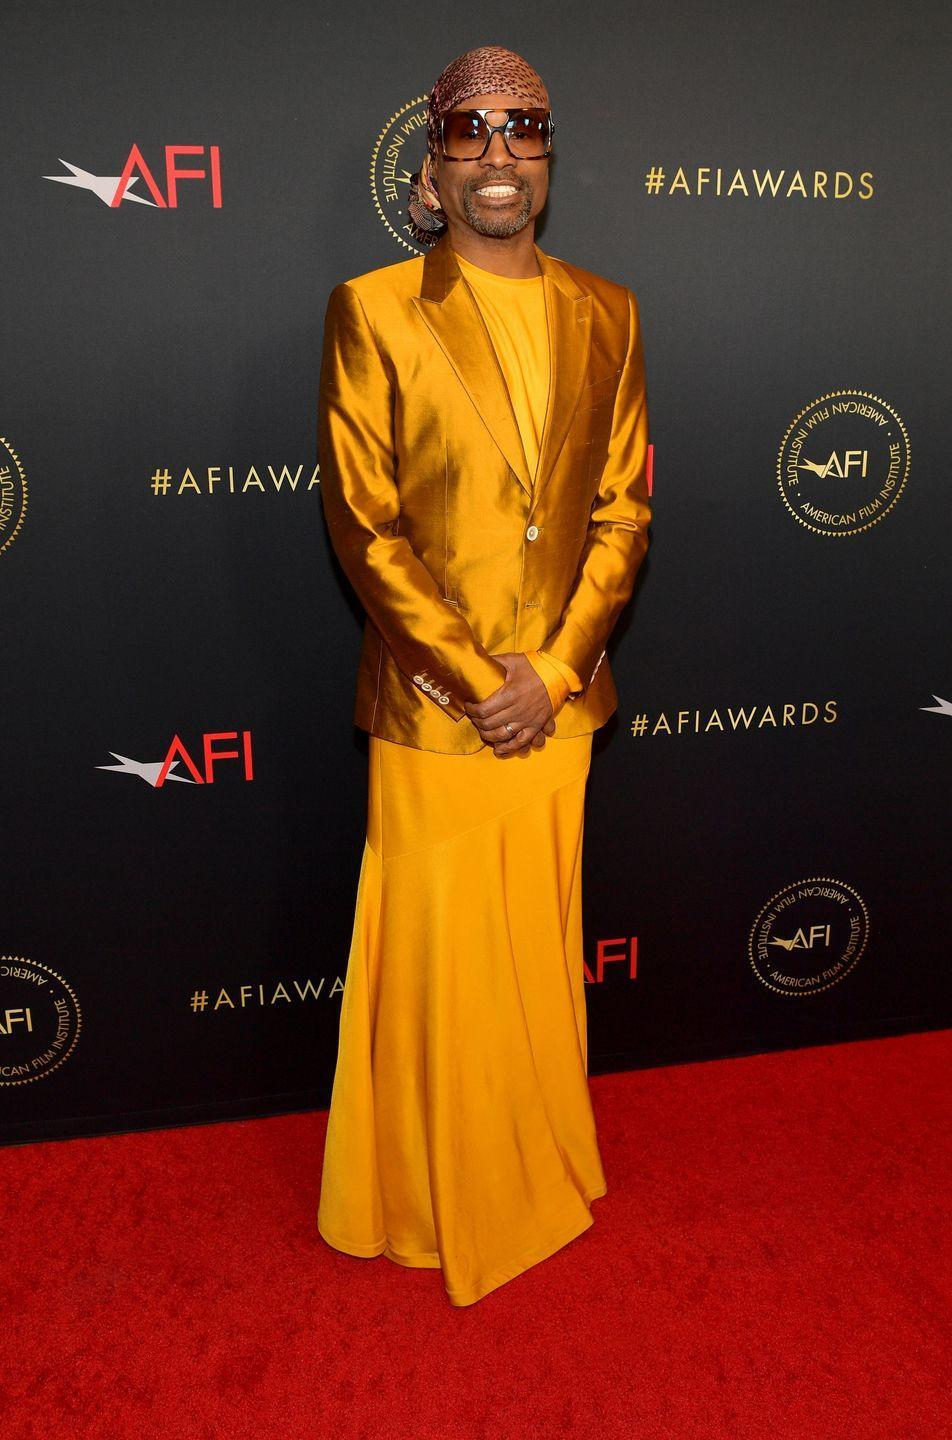 <p>Porter wore shimmering burnt orange-coloured Dolce & Gabbana suit jacket and a golden dress by Calvin Klein to the AFI Awards Luncheon.</p>